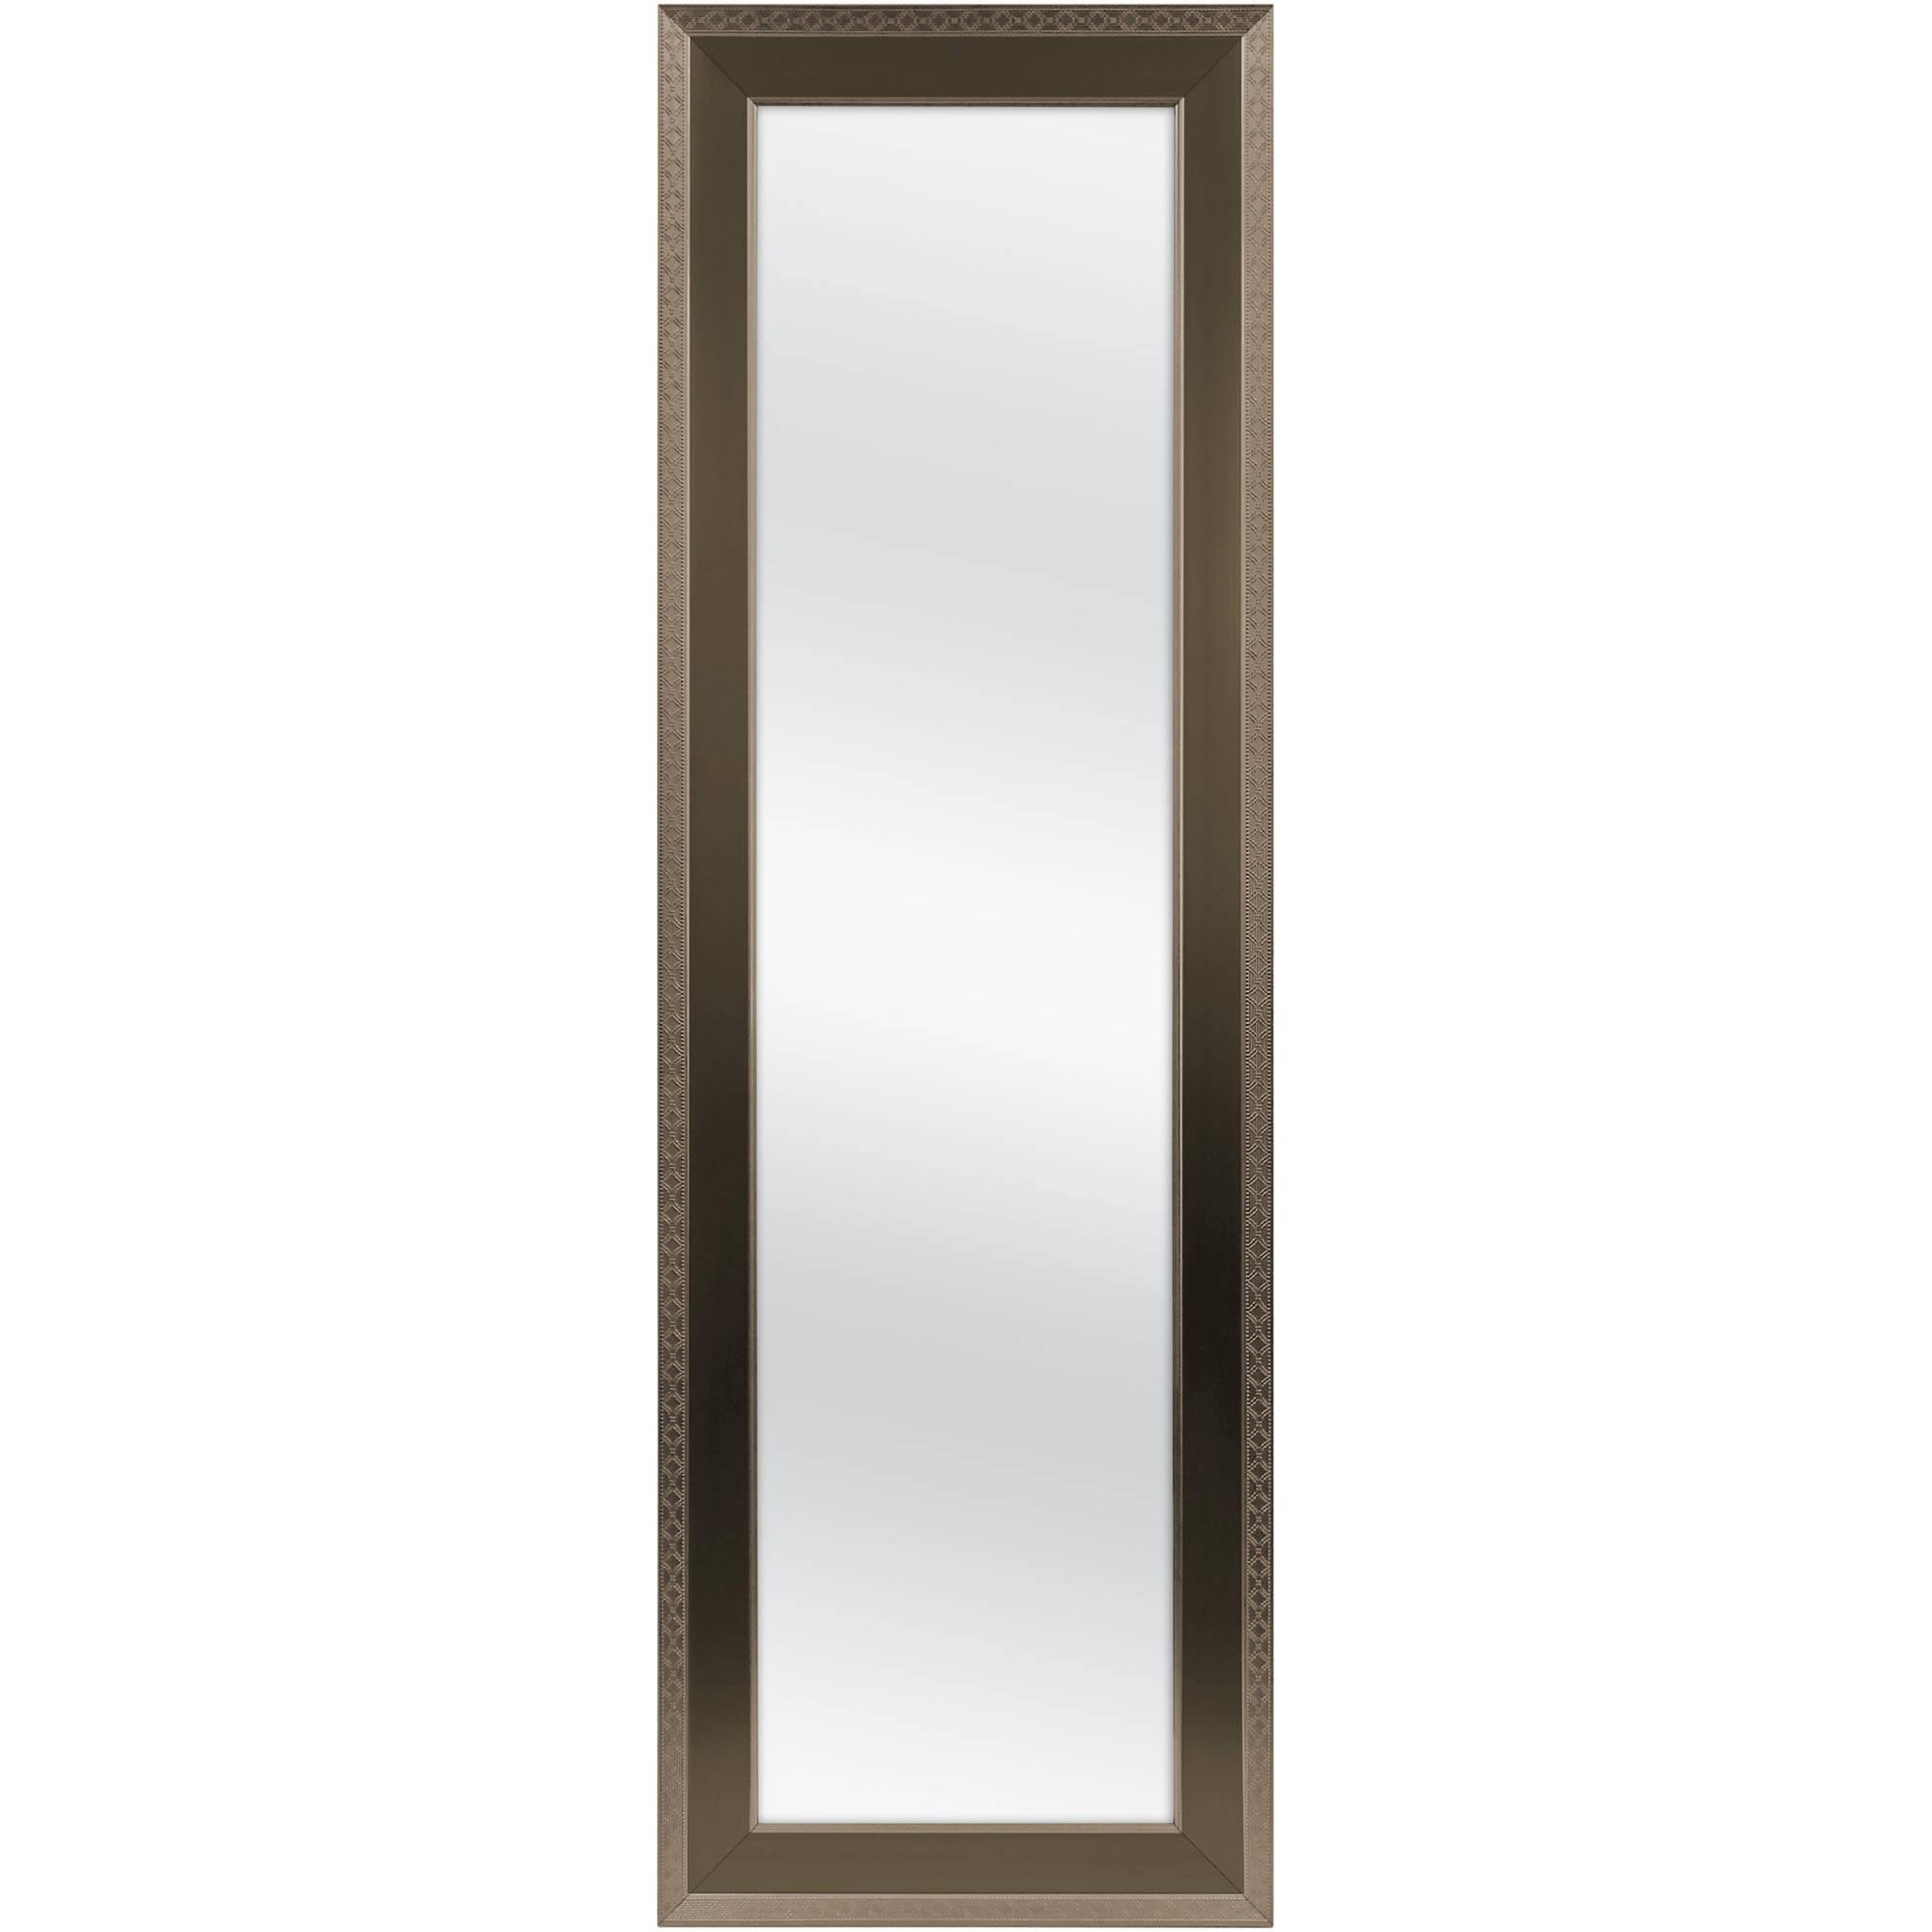 Long Mirrors Throughout Long Length Mirror (Image 13 of 15)